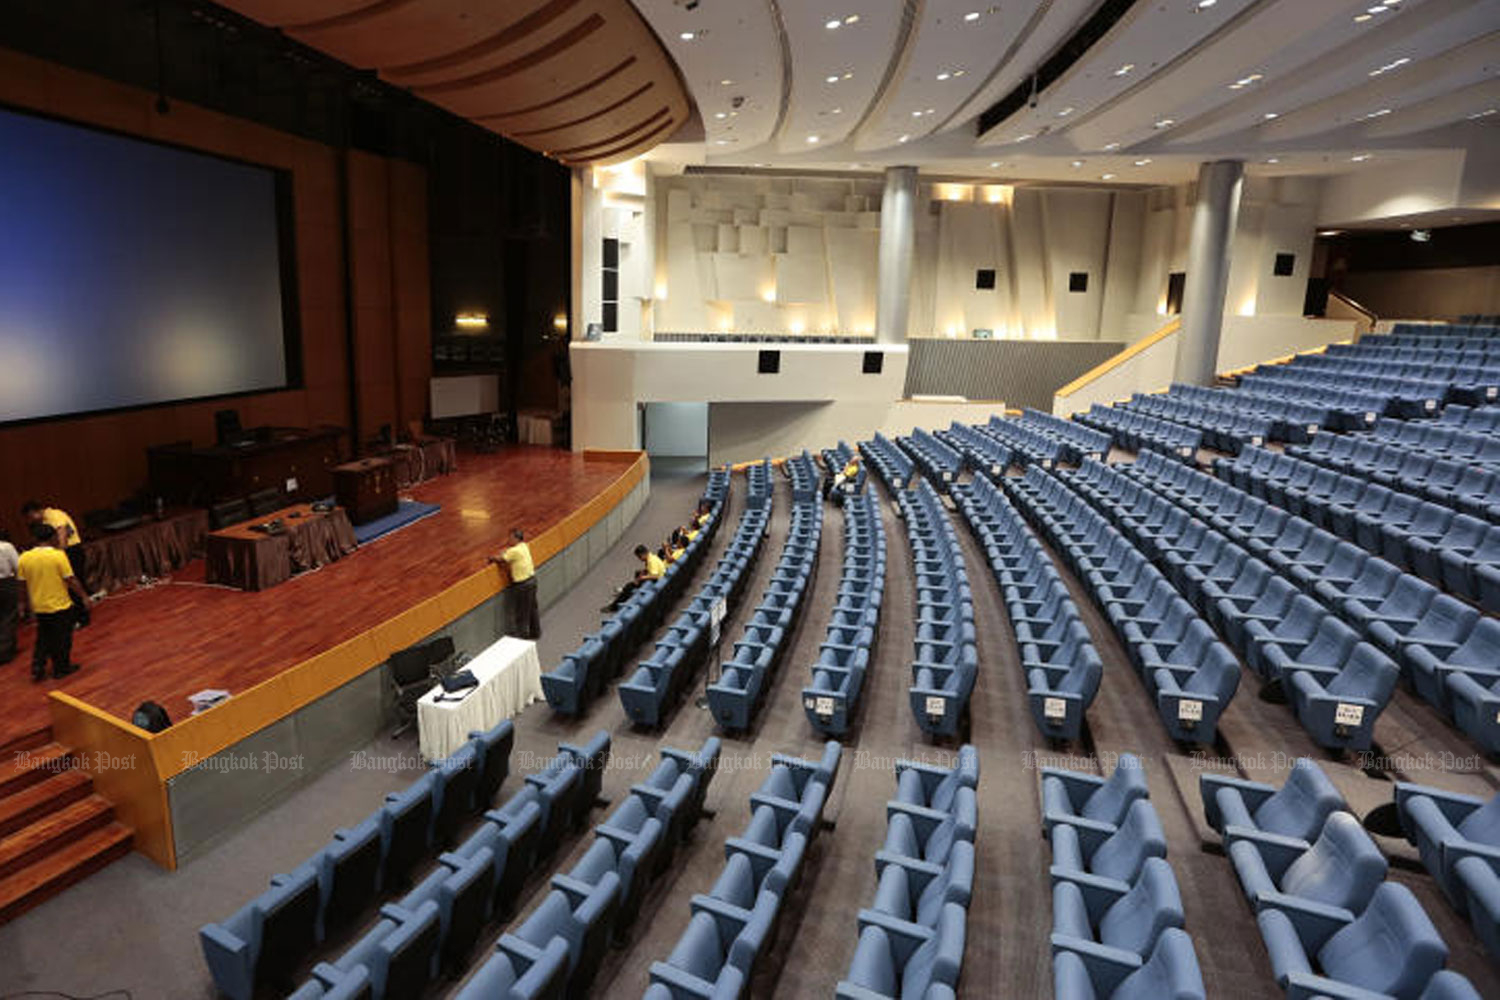 Officials prepare the auditorium at TOT Plc on Chaeng Watthana Road for the first sessions of the Senate and House of Representatives on Friday and Saturday. (Photo by Patipat Janthong)